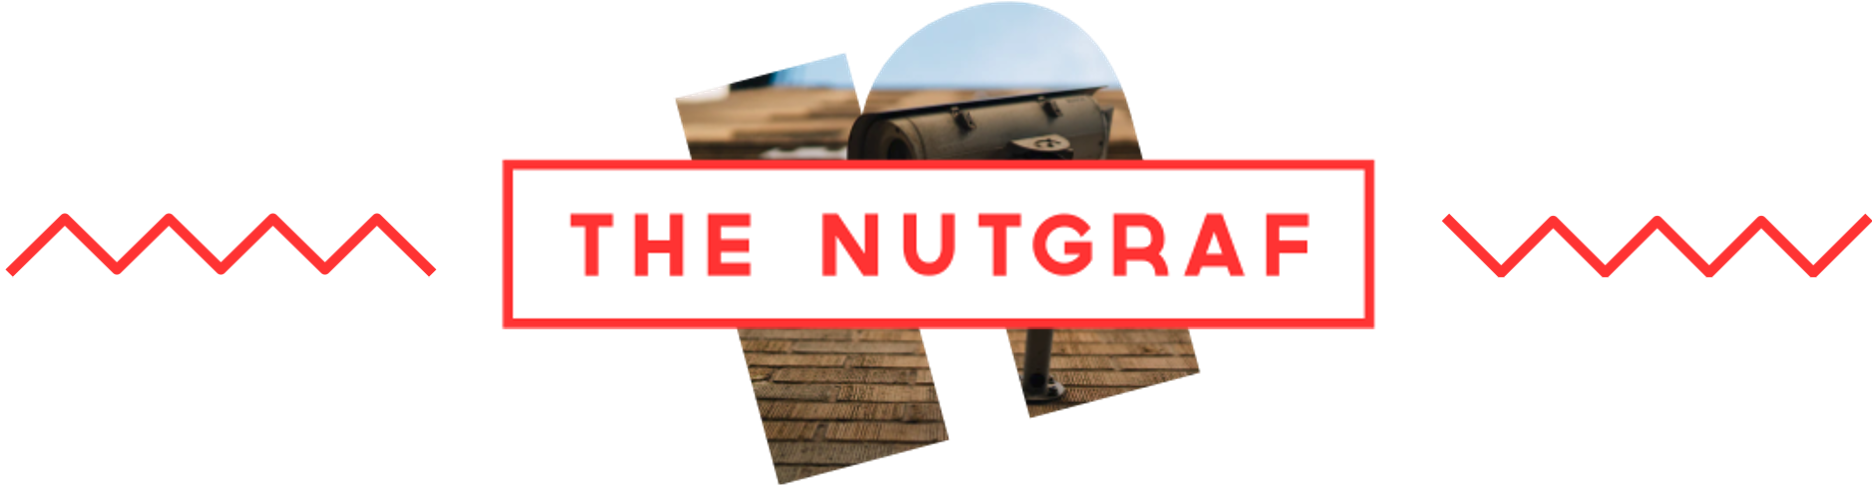 The Nutgraf by The Ken